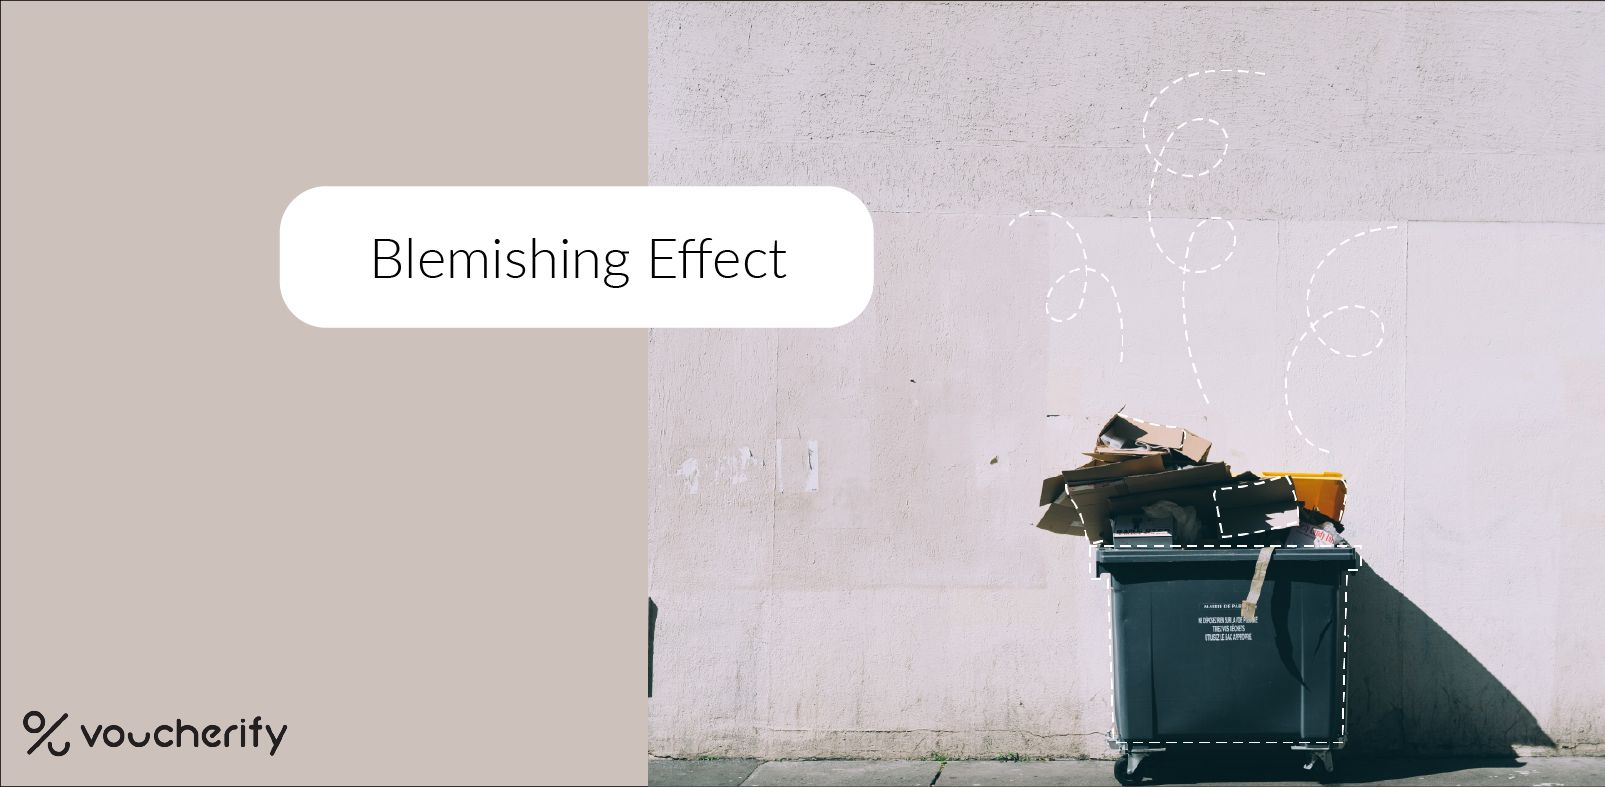 The Blemishing Effect – Secret Tactic to Boost your Sales